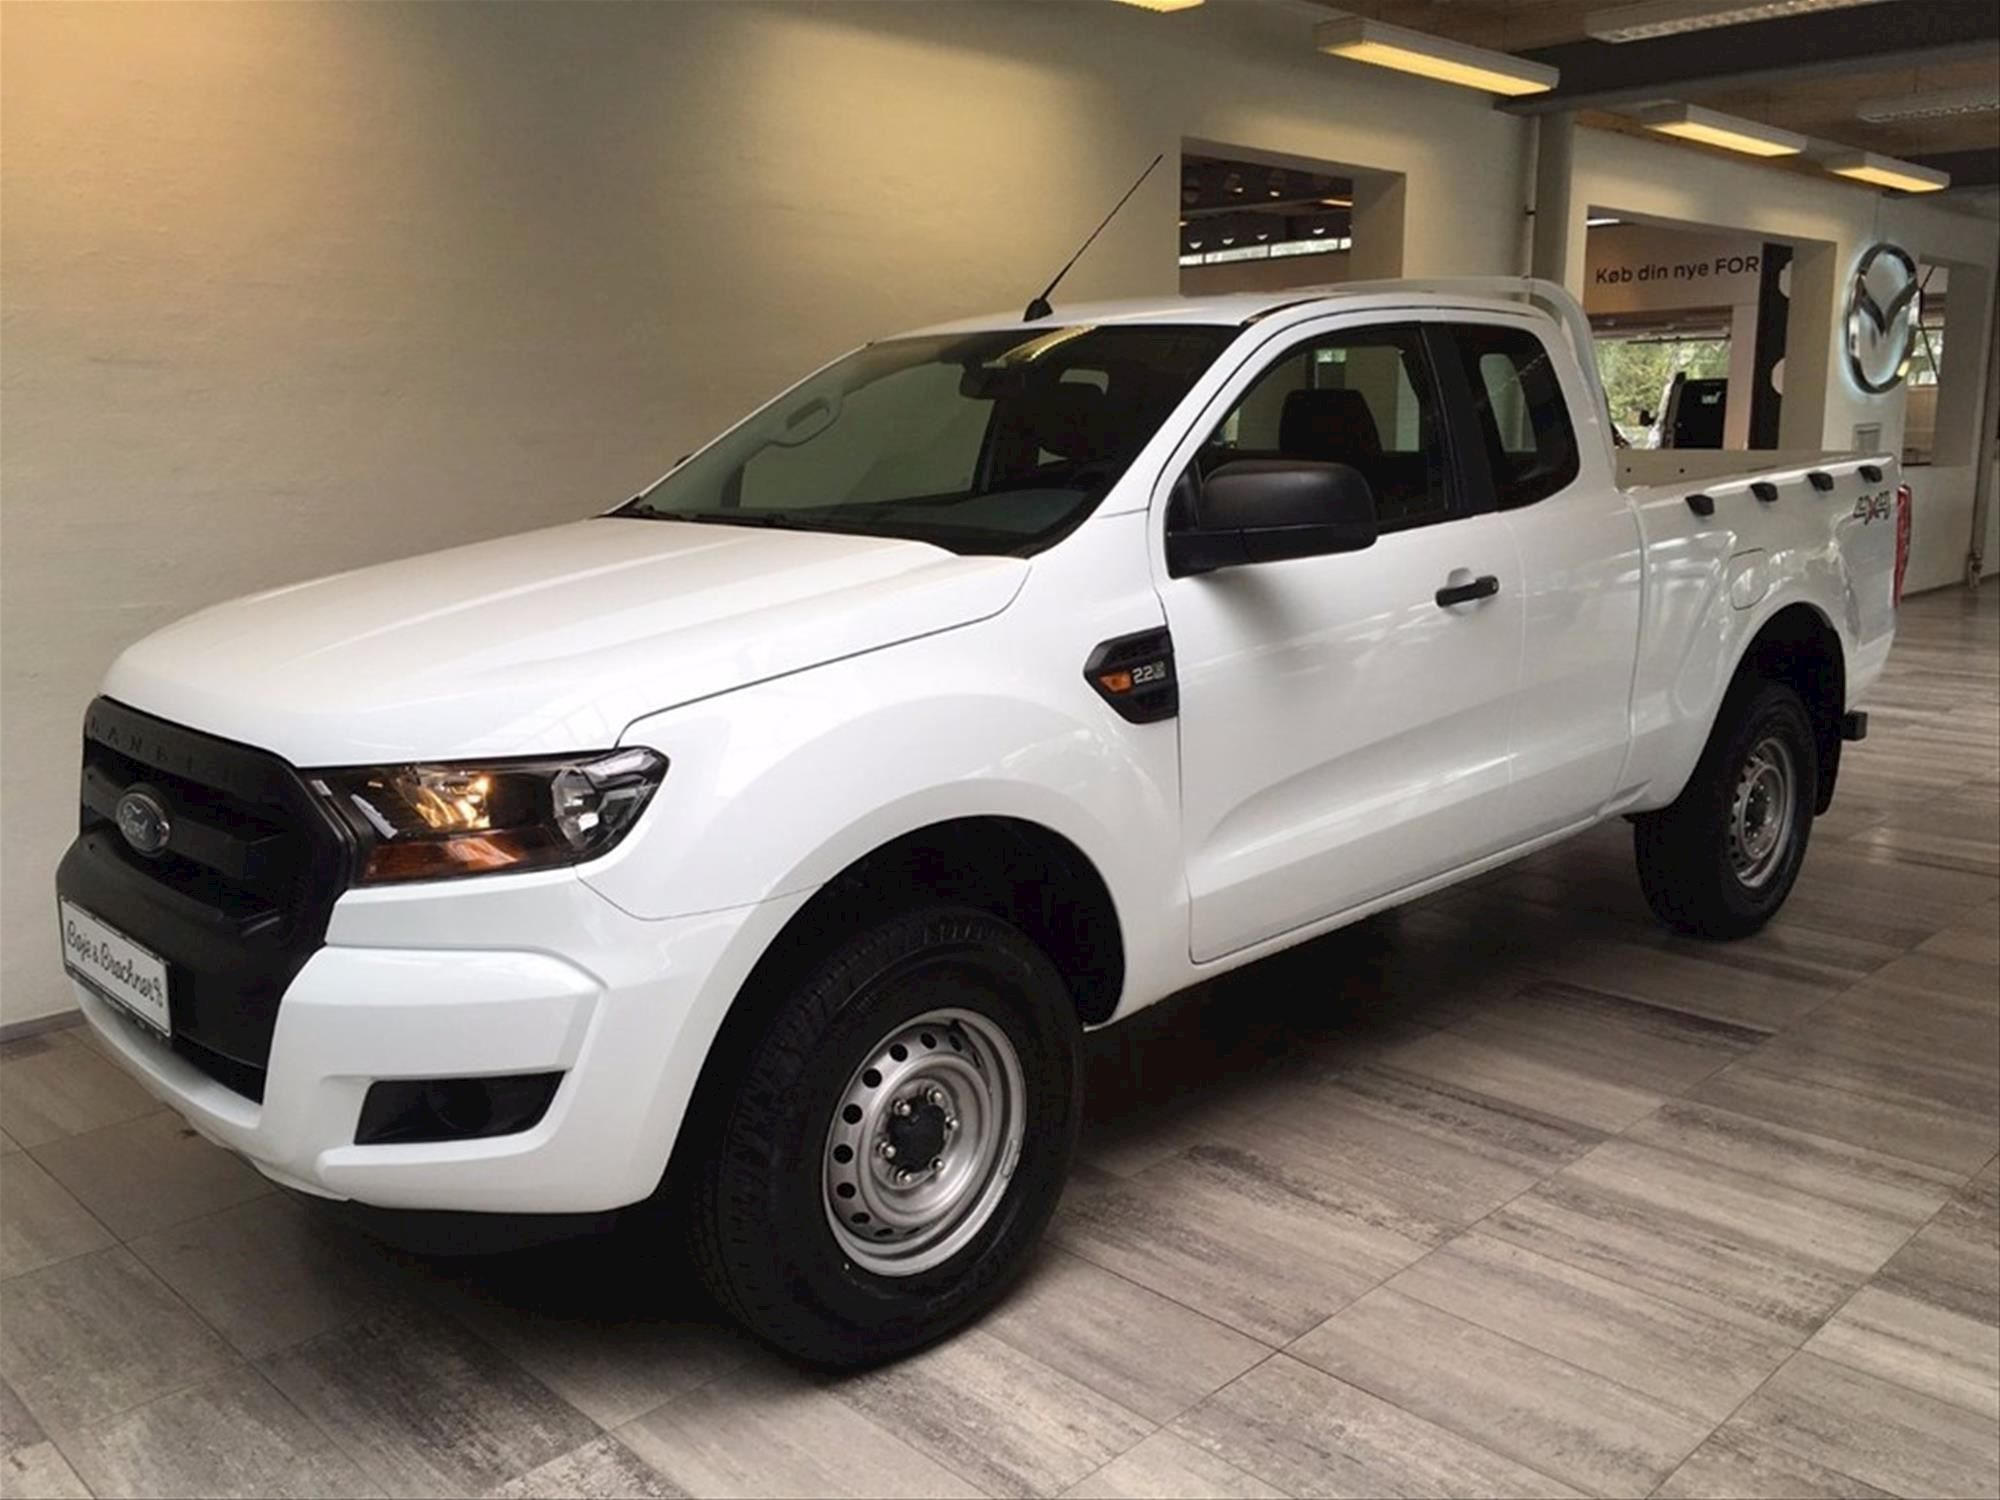 2017 Ford Ranger Super Cab 2 Xl Finland Version Fordranger Rangerxl